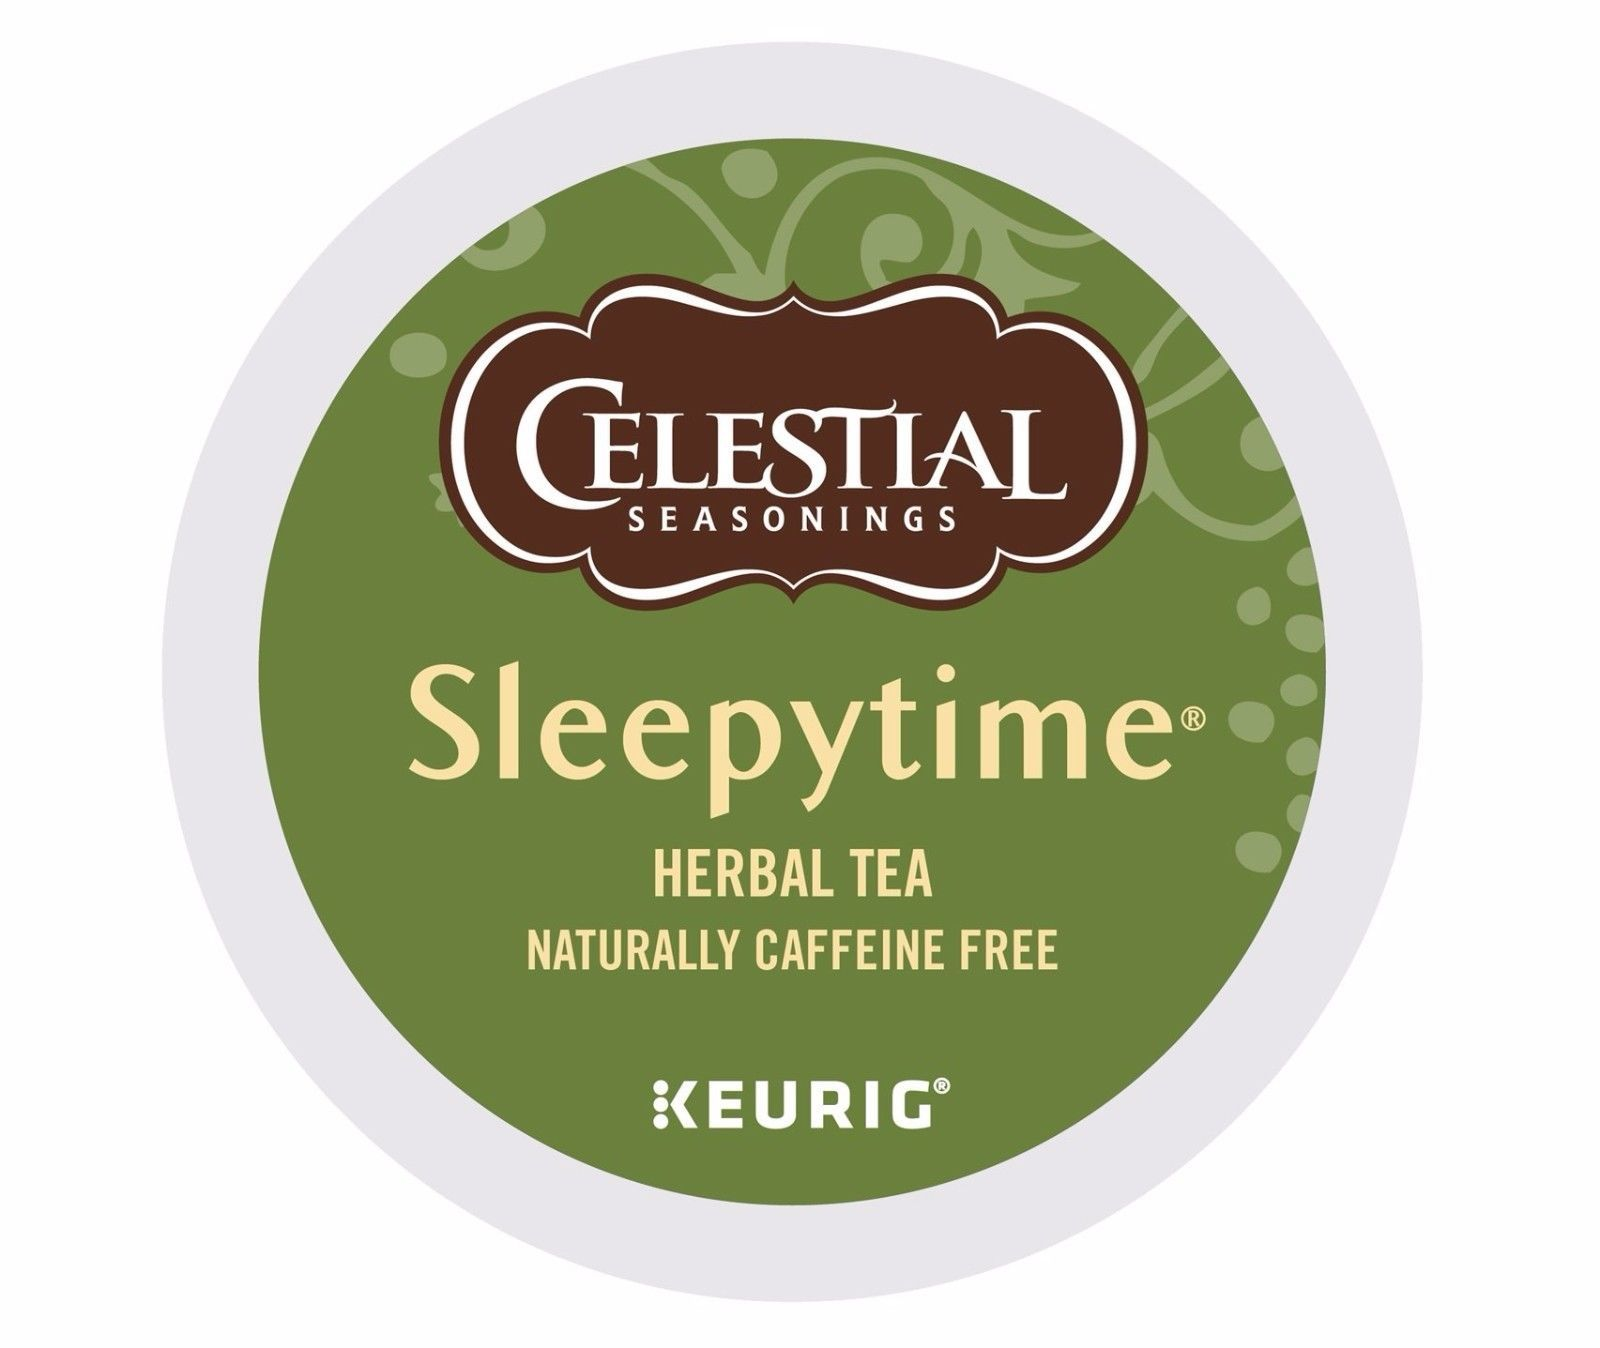 Primary image for Celestial Seasonings Sleepytime Herbal Tea 48 count Keurig K cups FREE SHIPPING